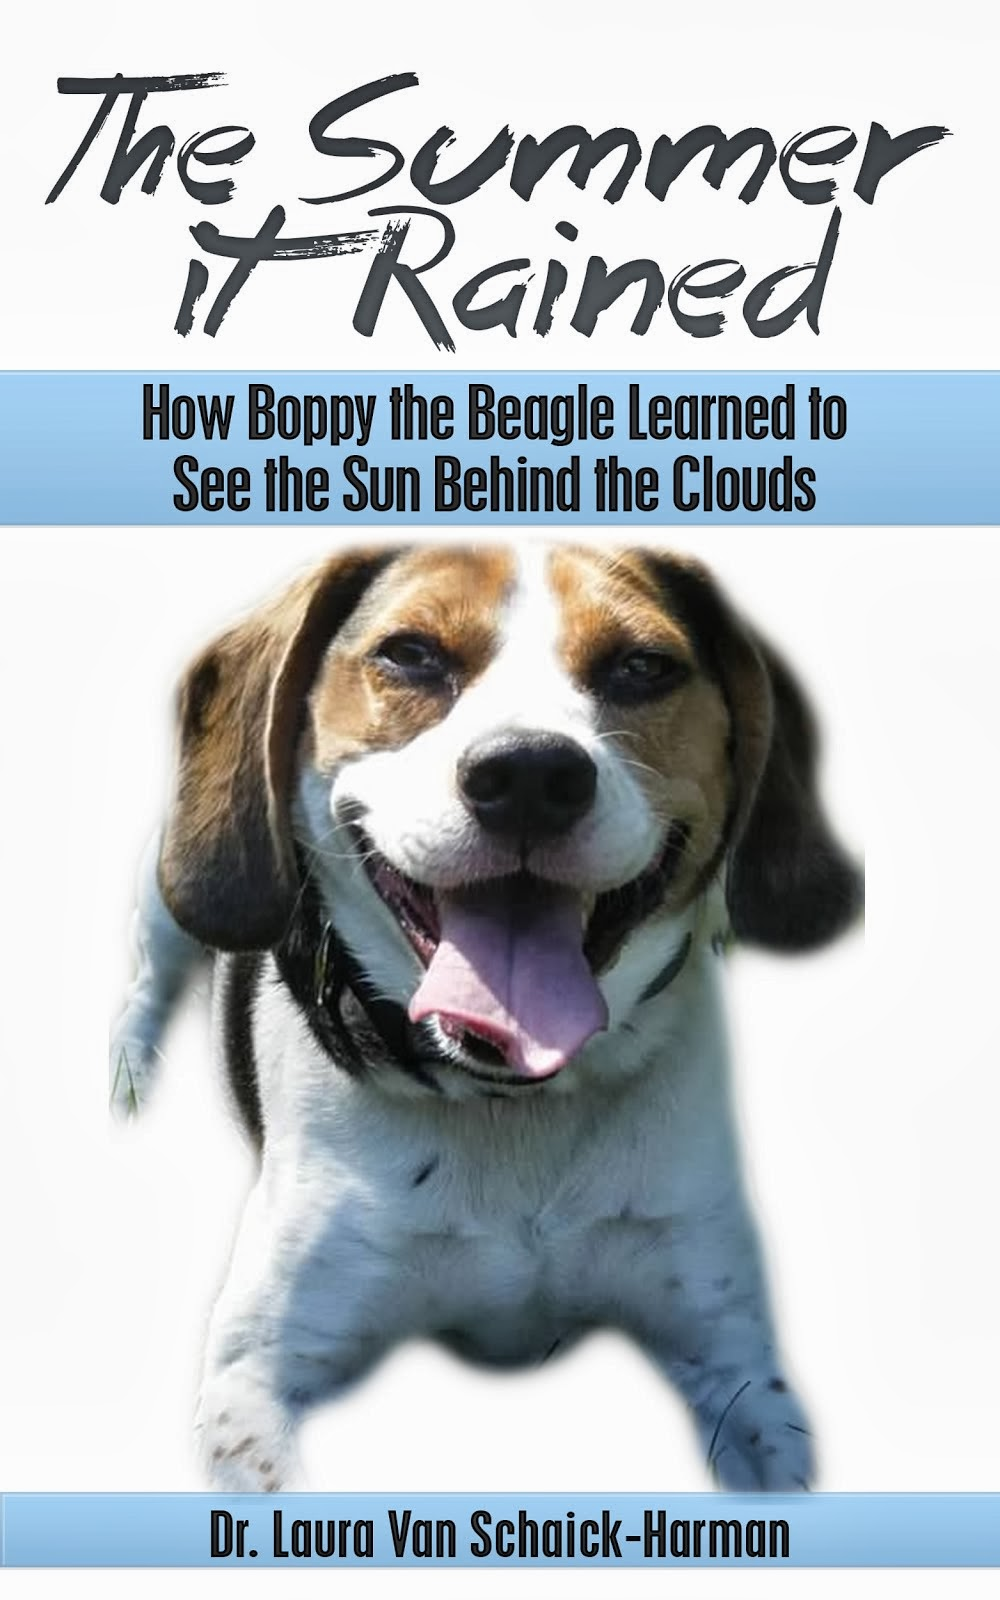 The Summer it Rained: How Boppy the Beagle Learned to See the Sun Behind the Clouds